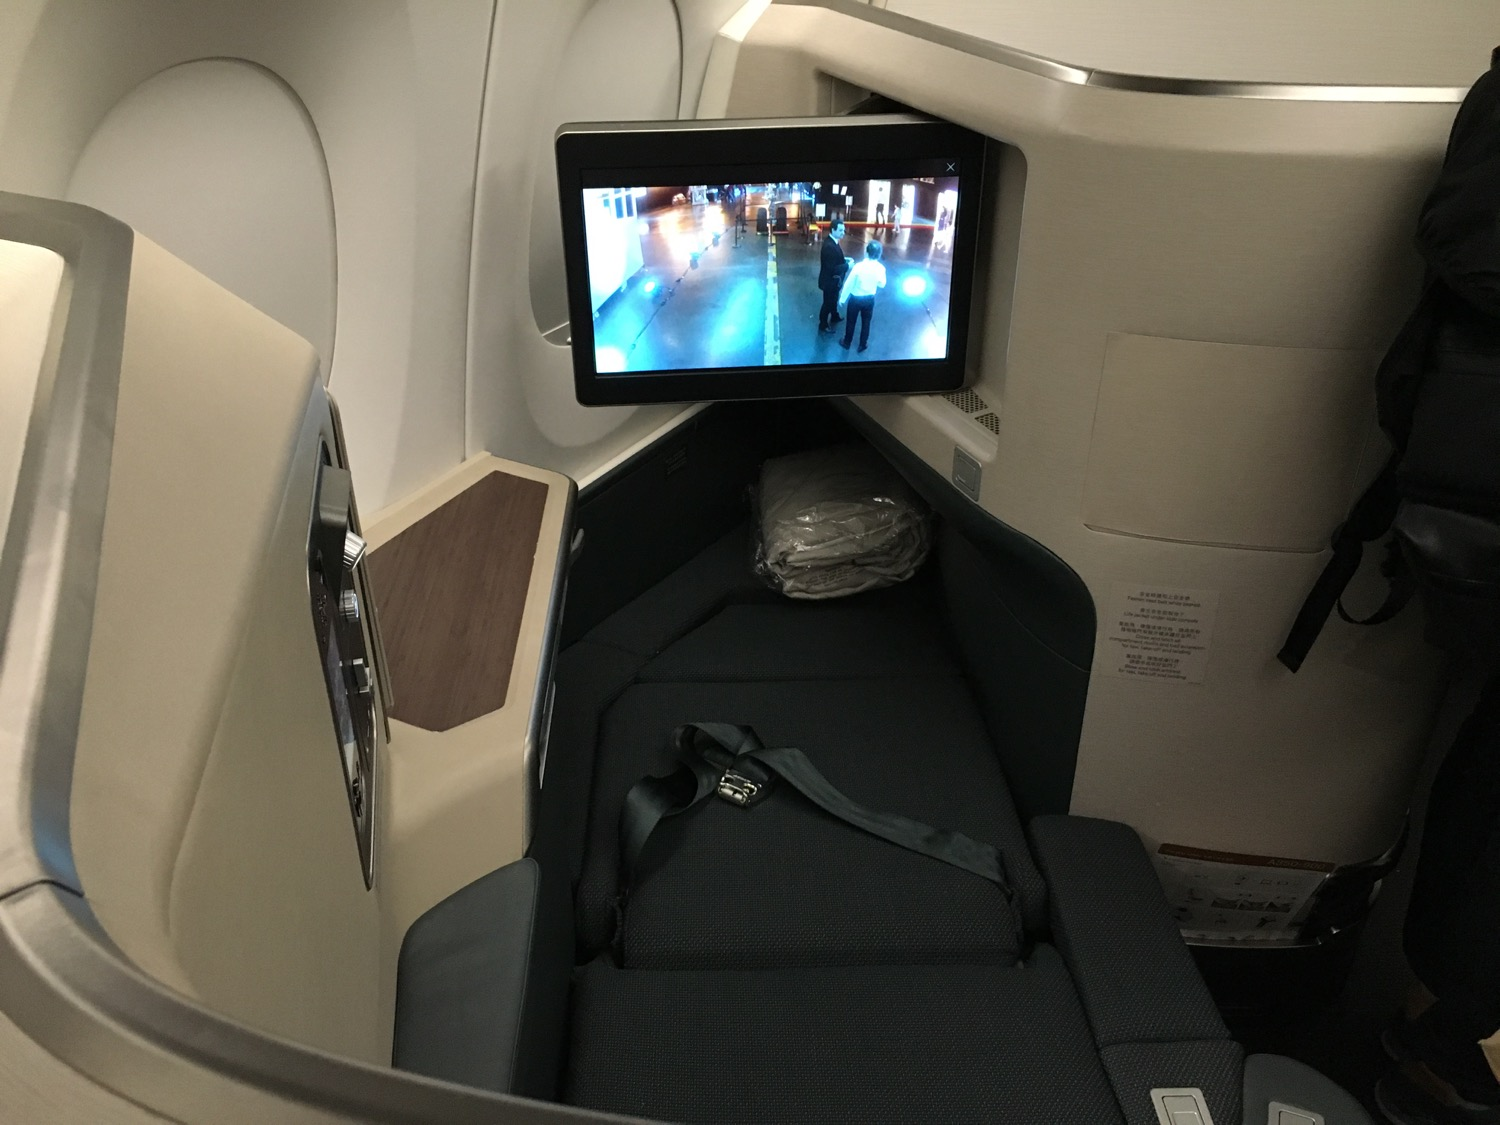 http://thedesignair.files.wordpress.com/2016/05/cathay-a350_-178.jpg